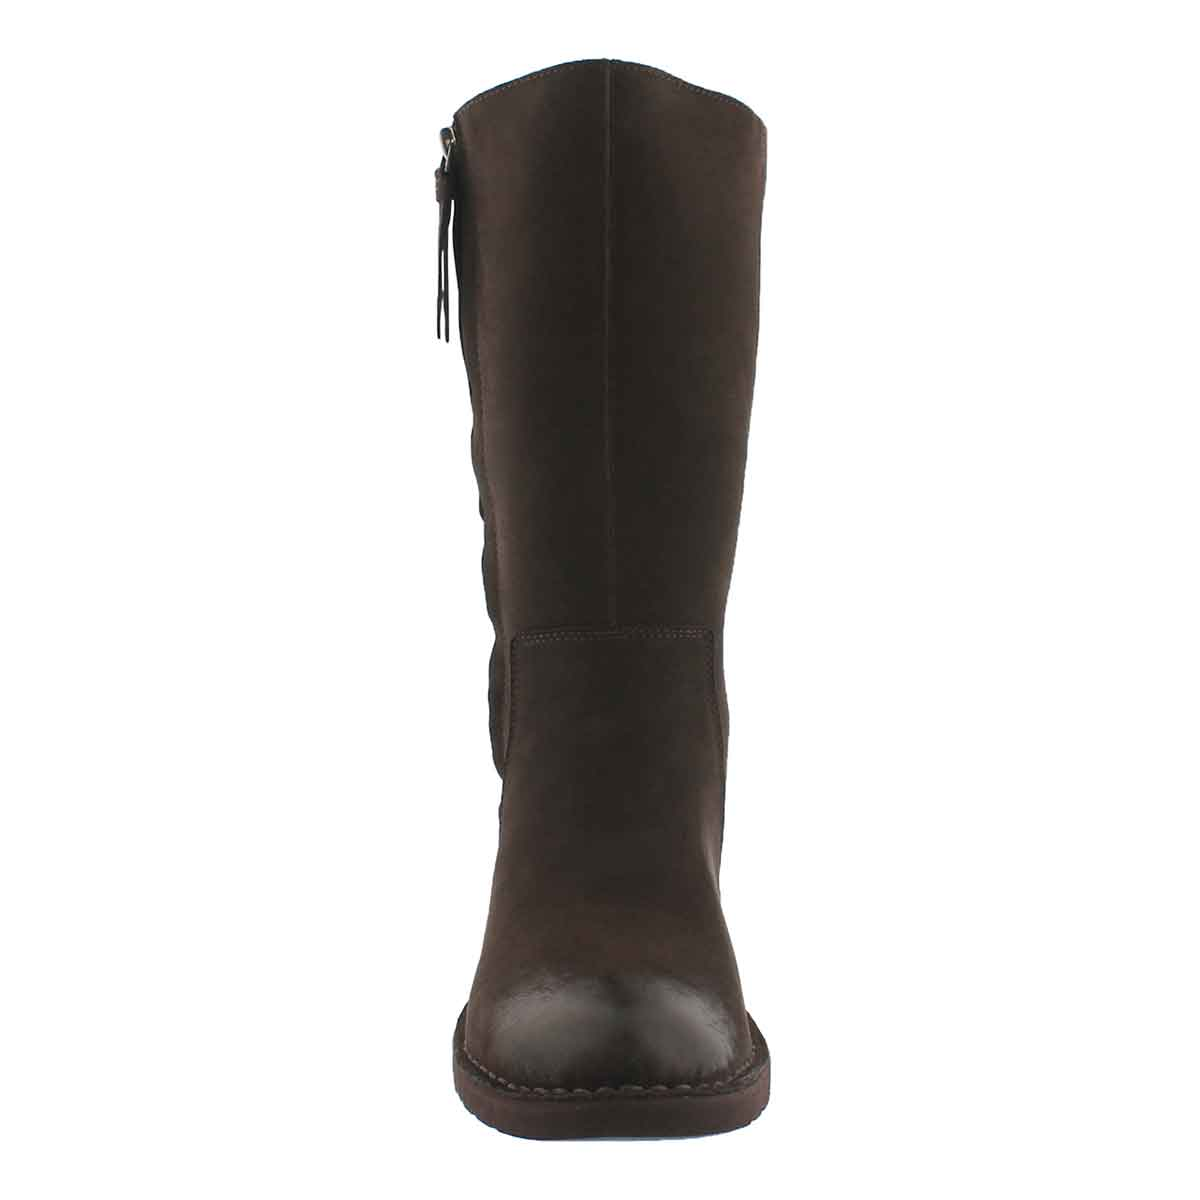 Lds Elly stout mid calf boot